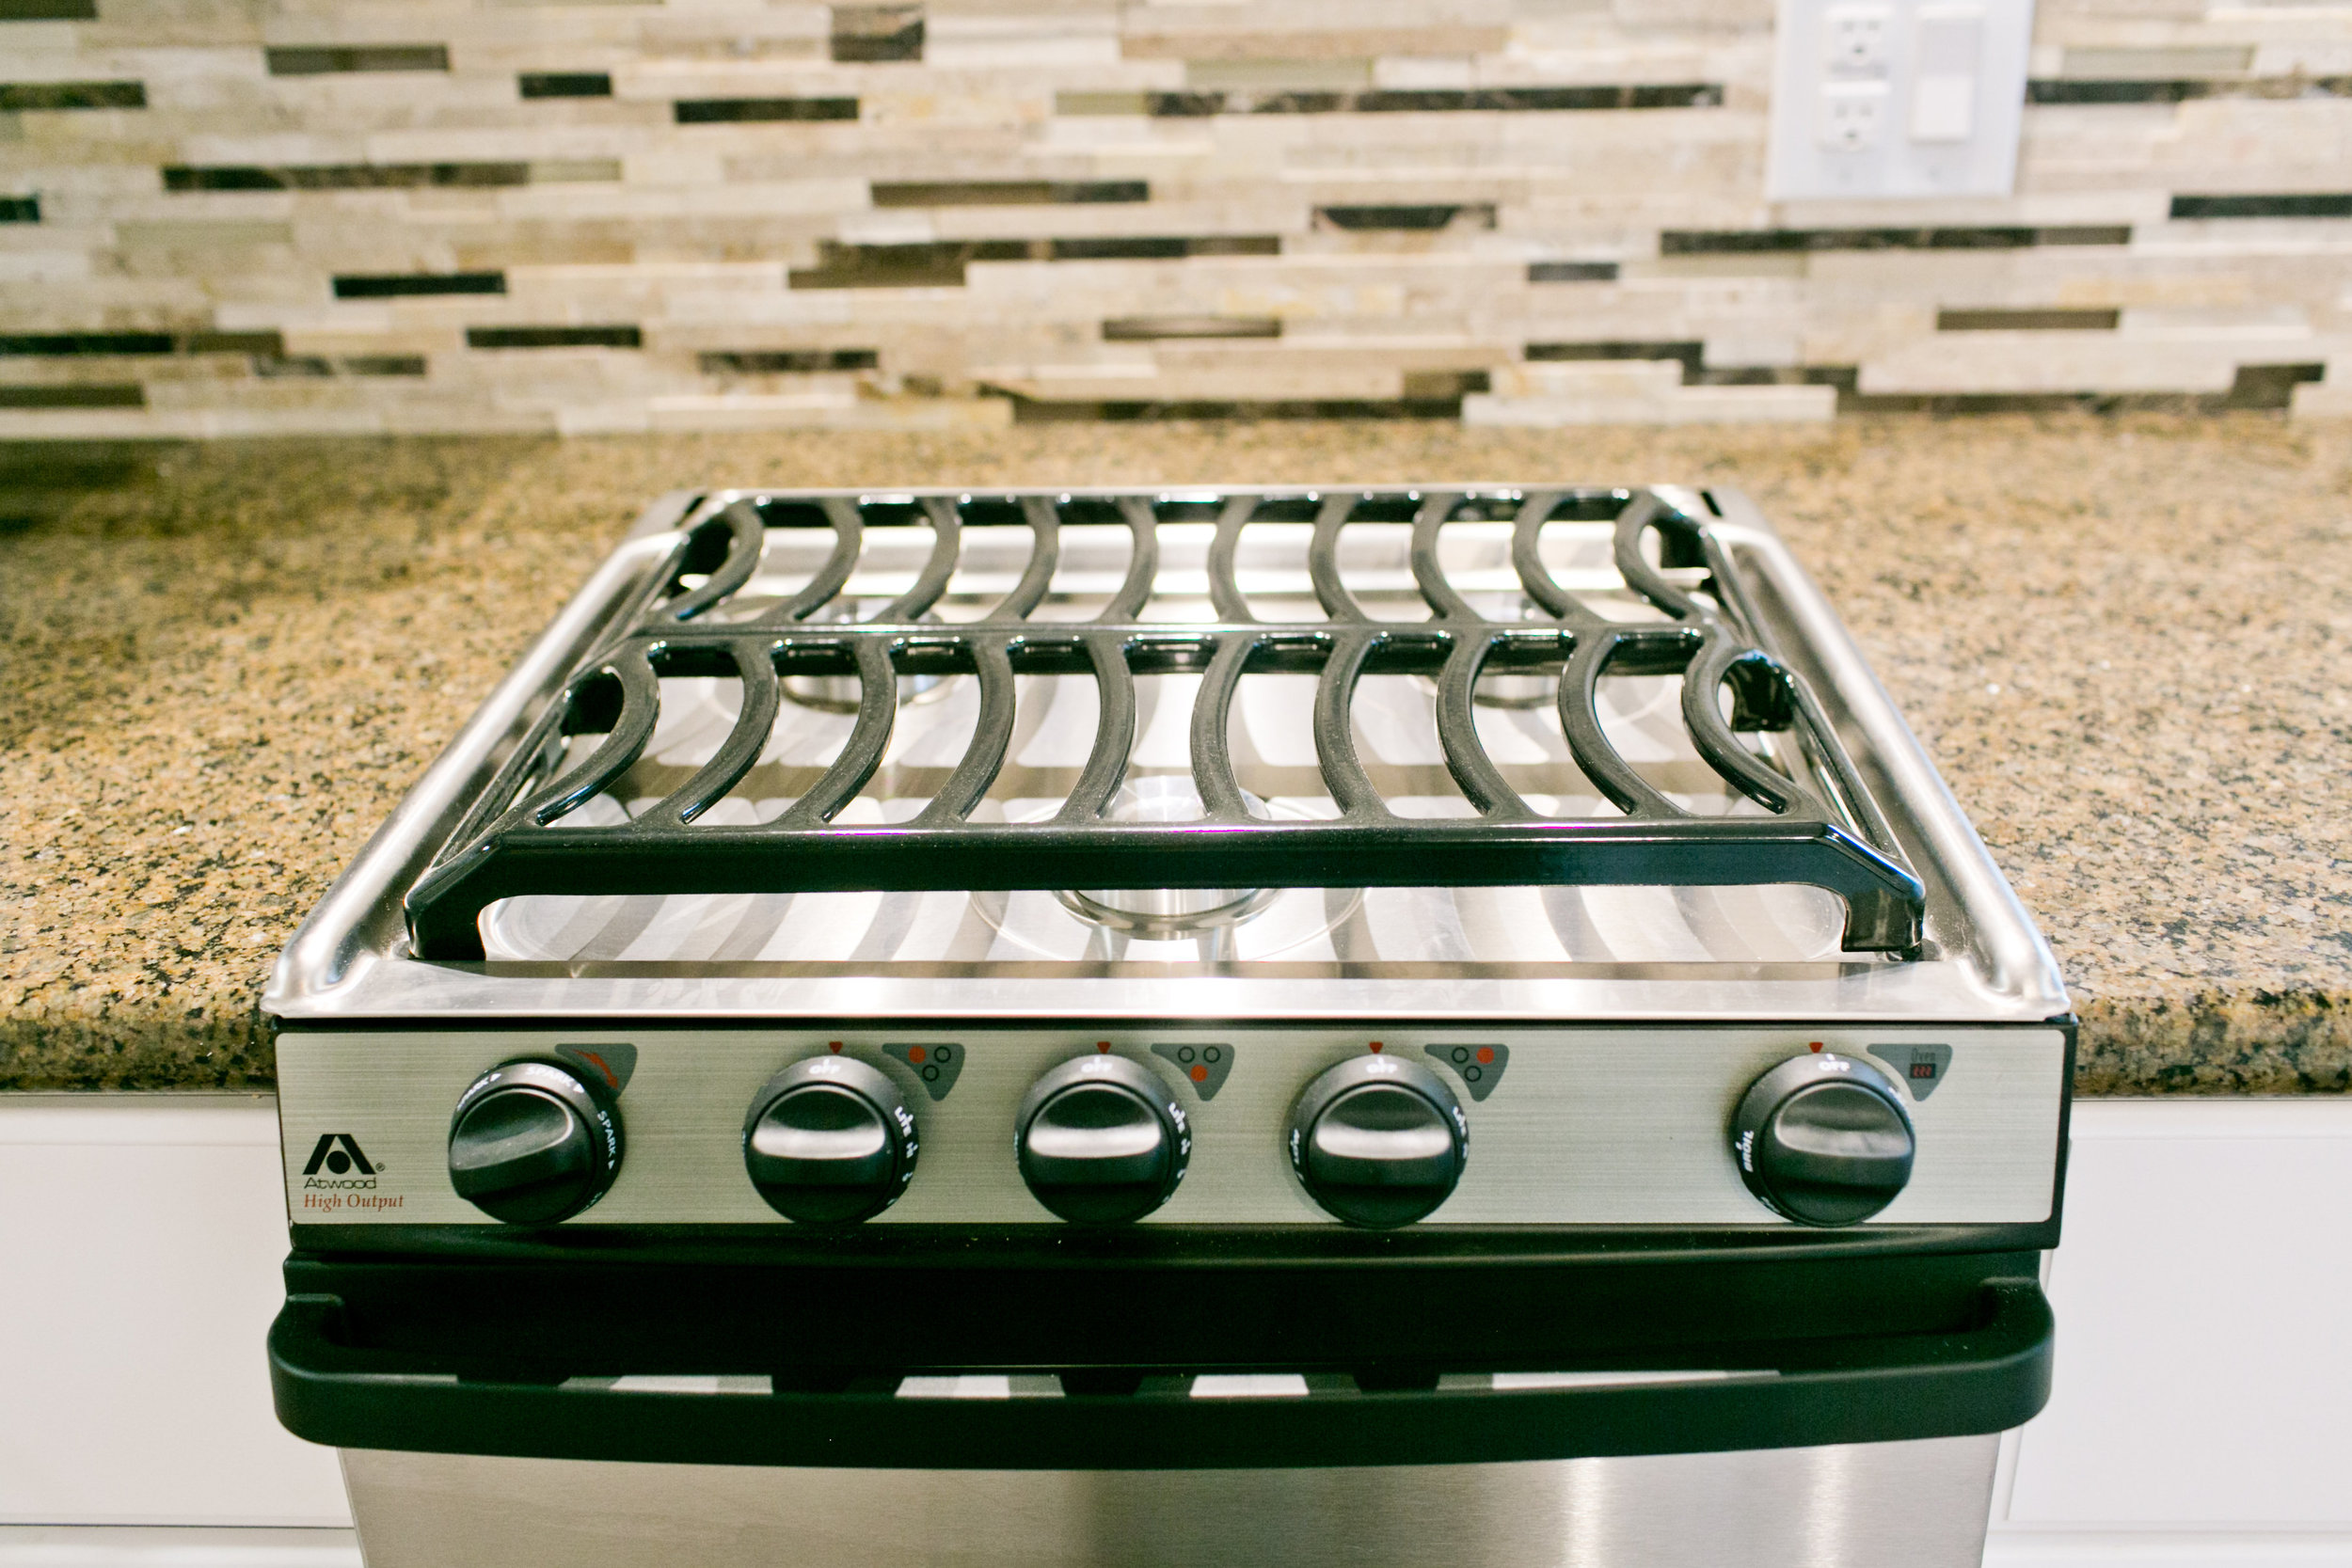 Stainless steel high BTU gas stove and oven